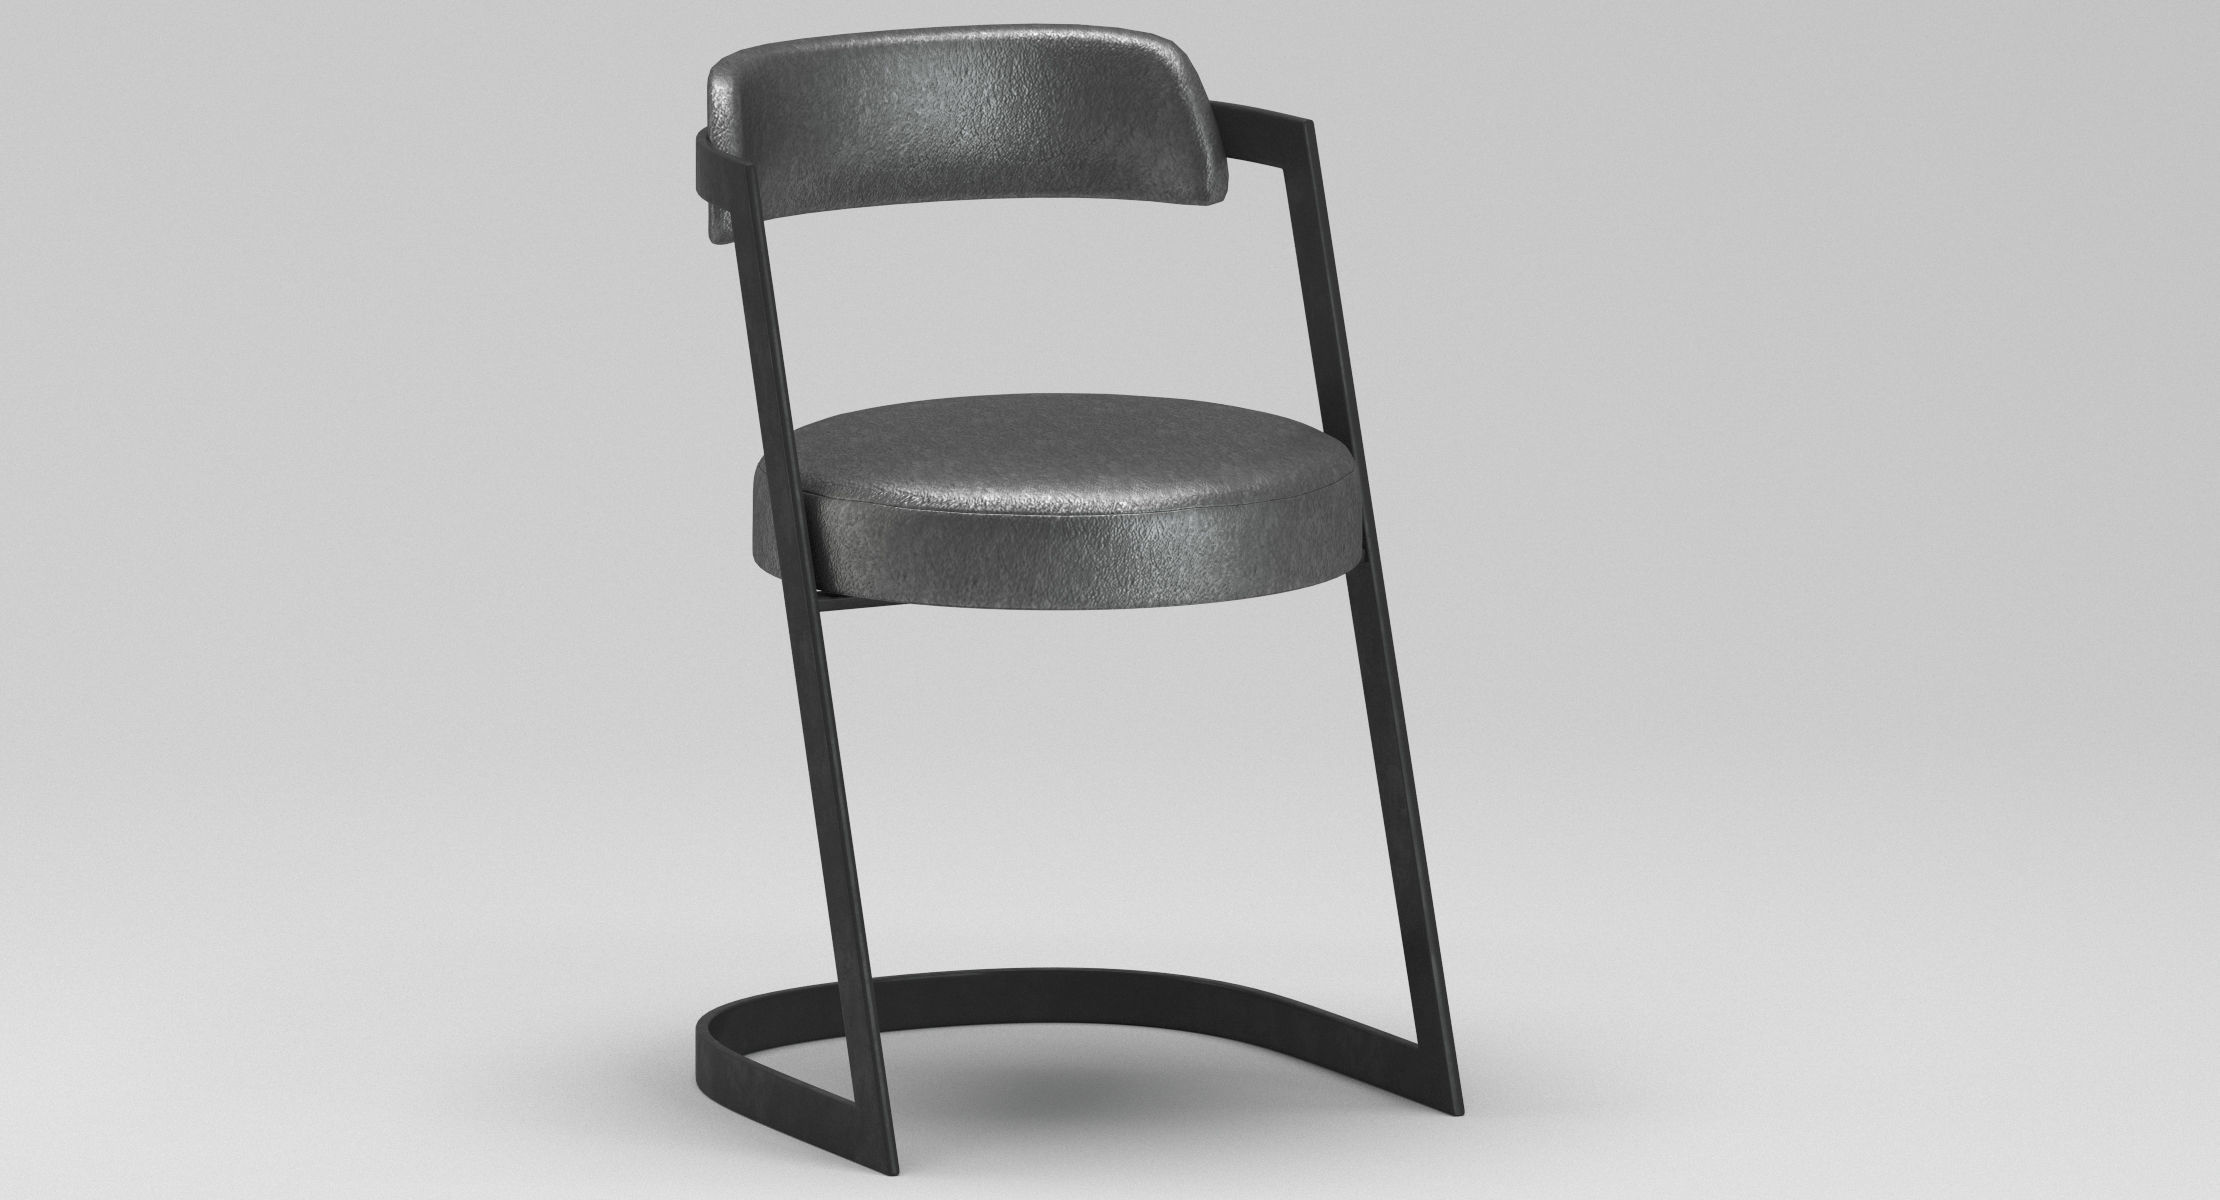 Studio Dining Chair Kelly Wearstler